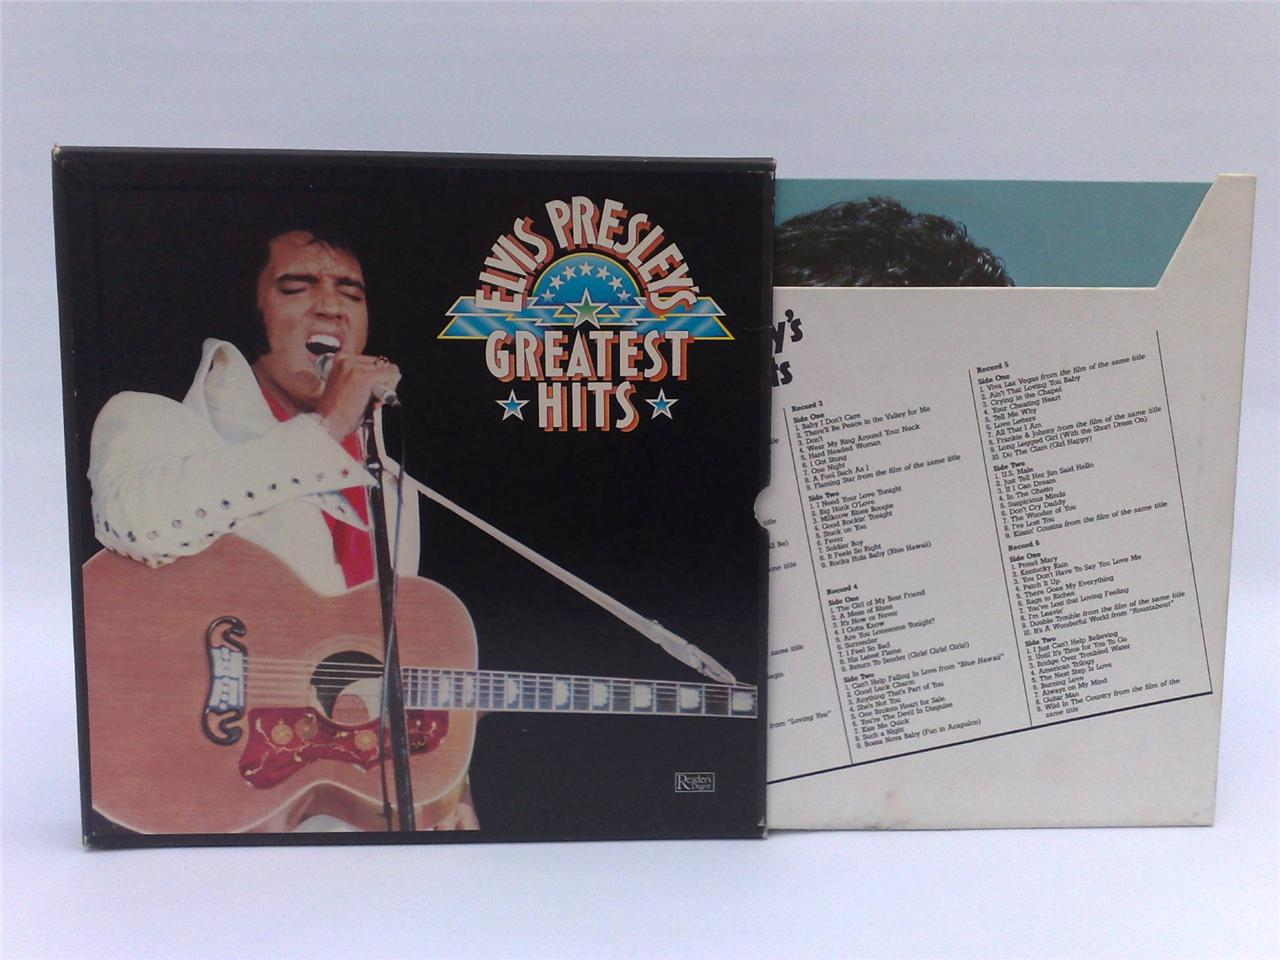 Elvis-Presleys-Greatest-Hits-Box-Set-Of-6-LP-Recordings-33-1-3-RPM-Collectable